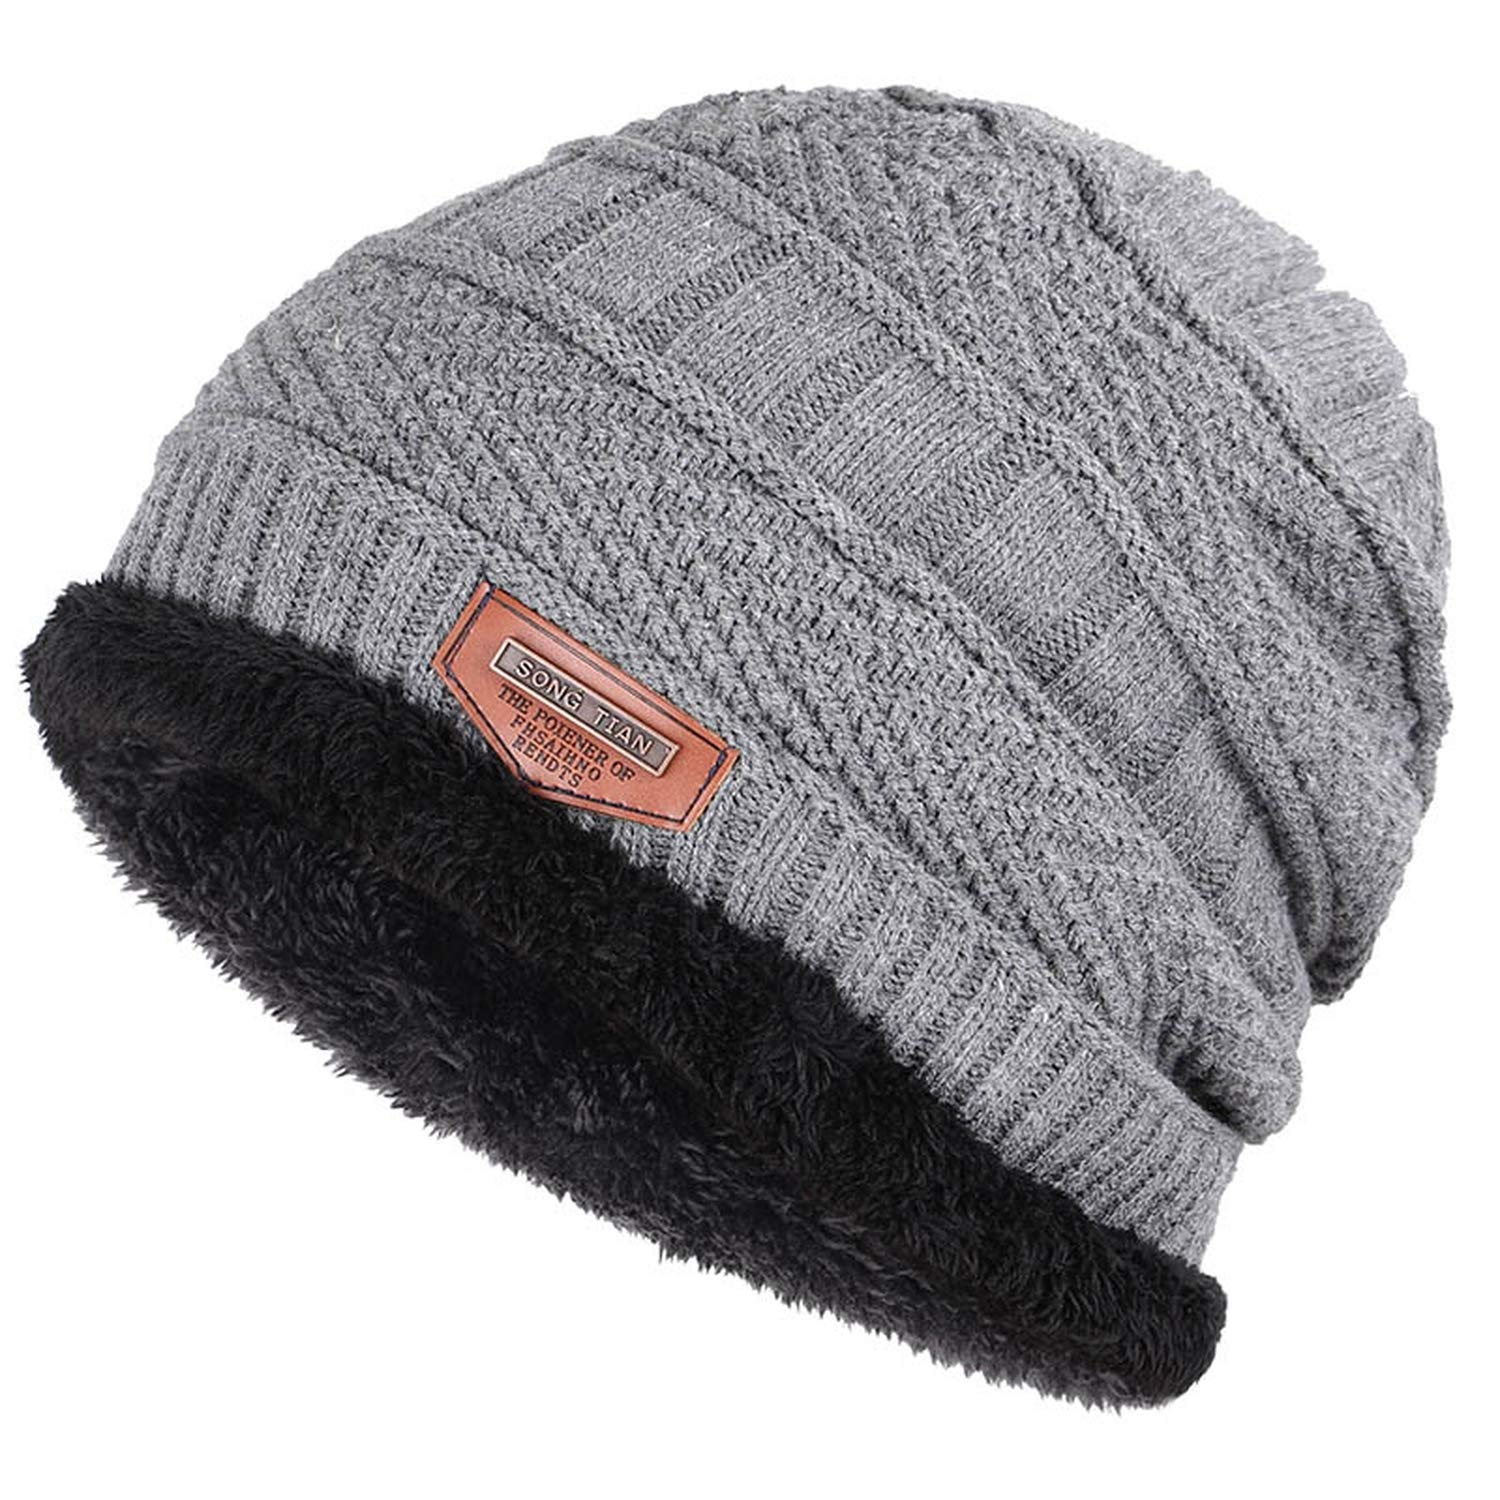 WinterNew Knitted Mens Hats Plus Velvet Thickening Outdoor Warm and Comfortable caps Leather Label Male